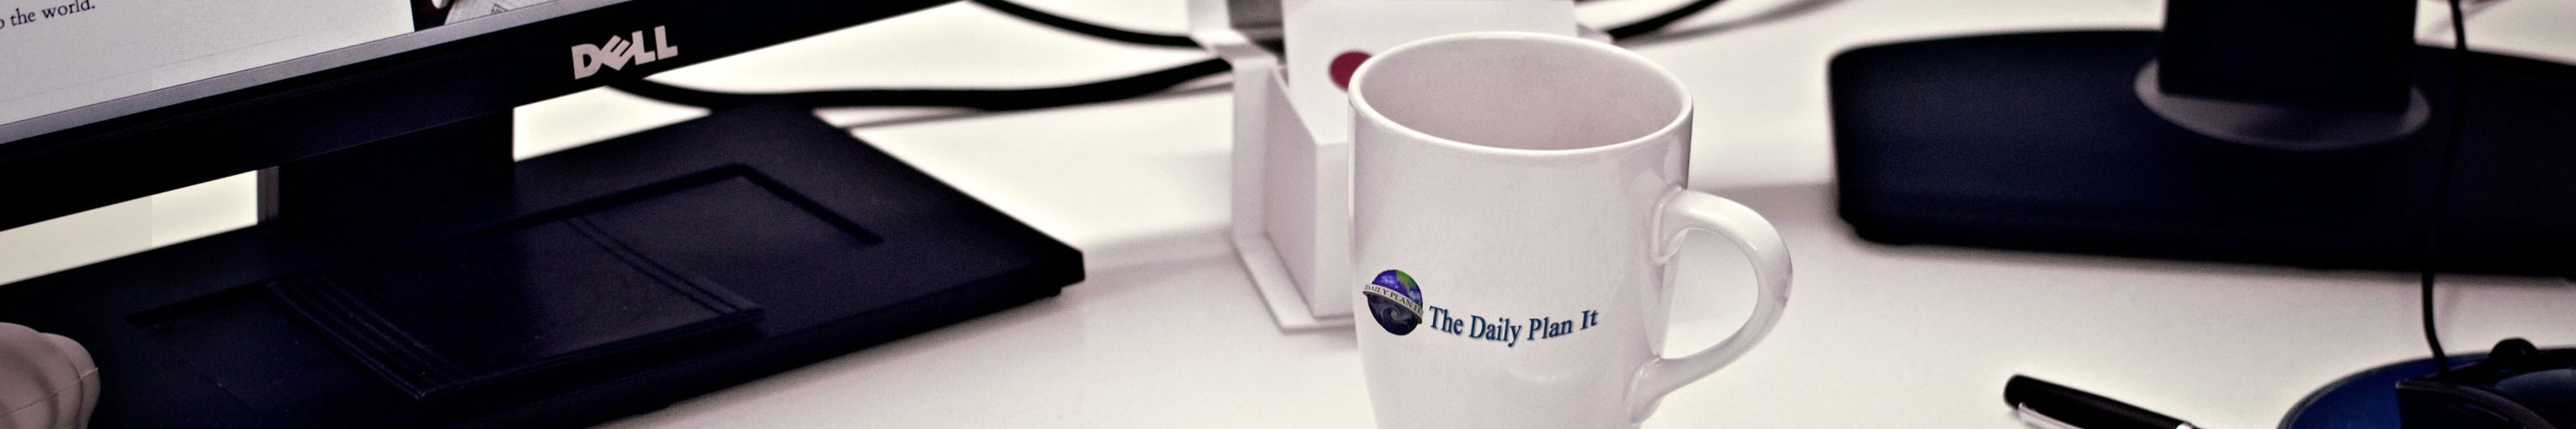 Daily Plan It - Where Your Business is The Center of Our Universe. Desk with coffee mug